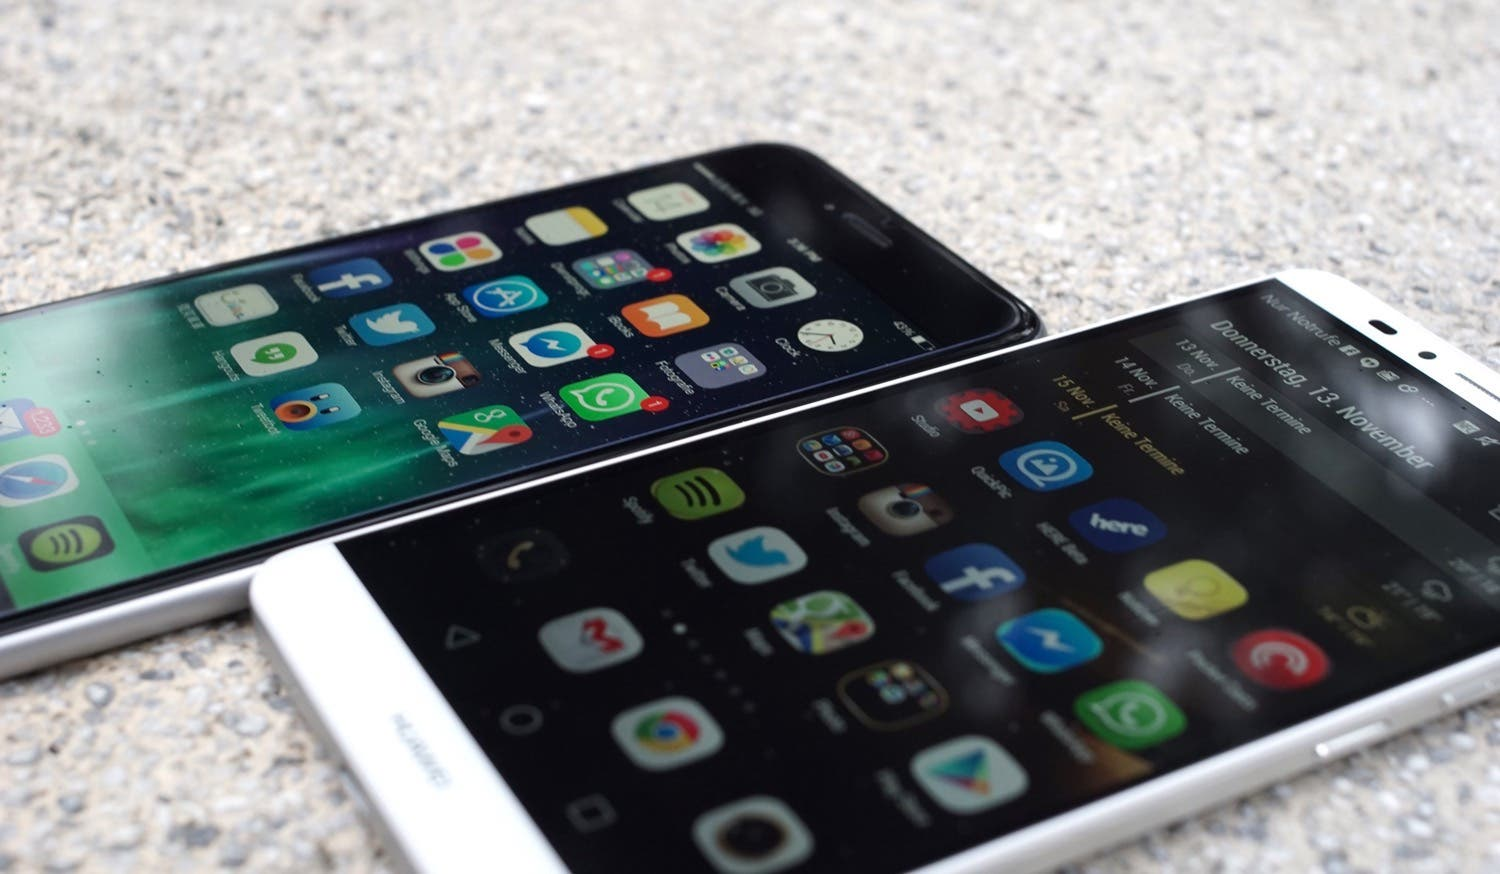 Doppeltest: iPhone 6 Plus vs. Huawei Ascend Mate 7